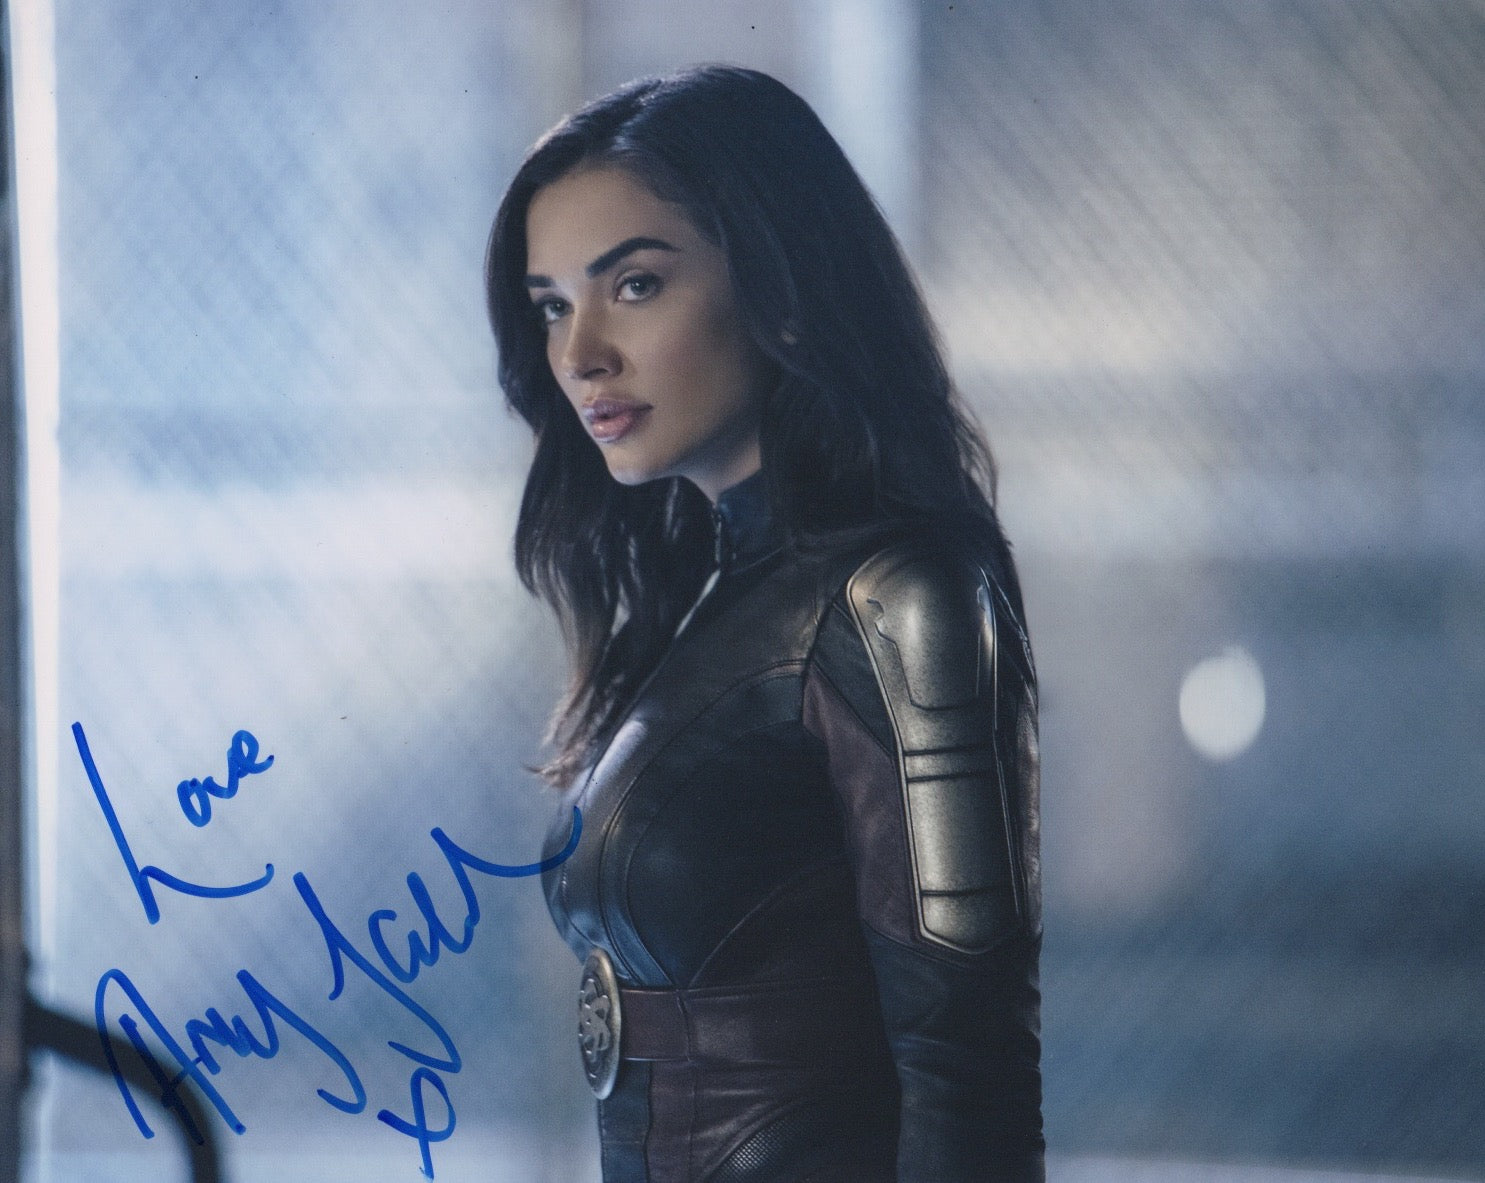 Amy Jackson Supergirl Signed Autograph 8x10 Photo #2 - Outlaw Hobbies Authentic Autographs